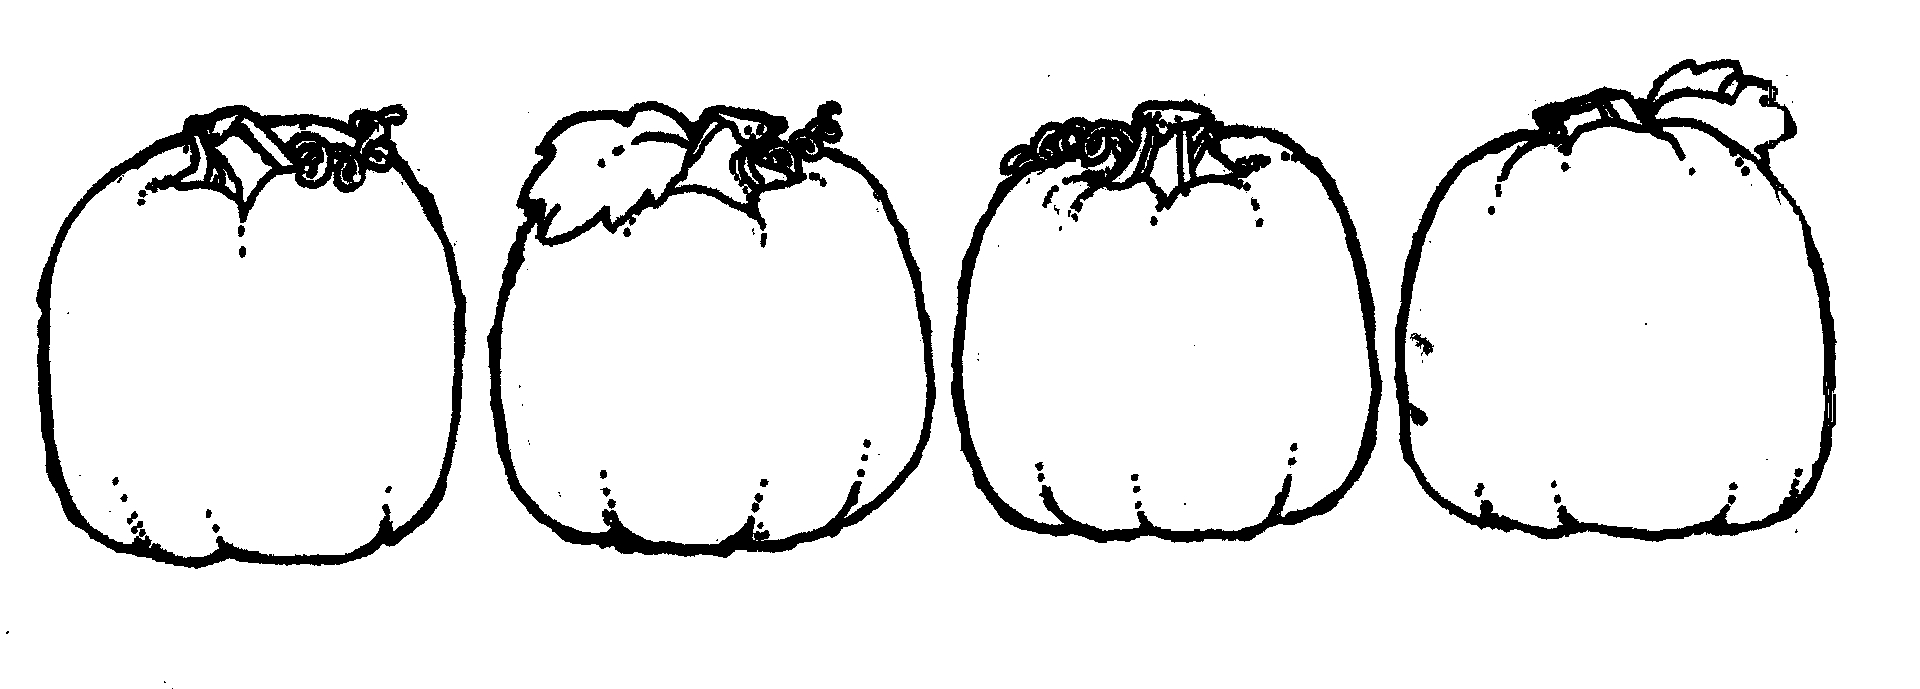 1920x689 Black And White Pumpkin Clip Art Fun For Christmas